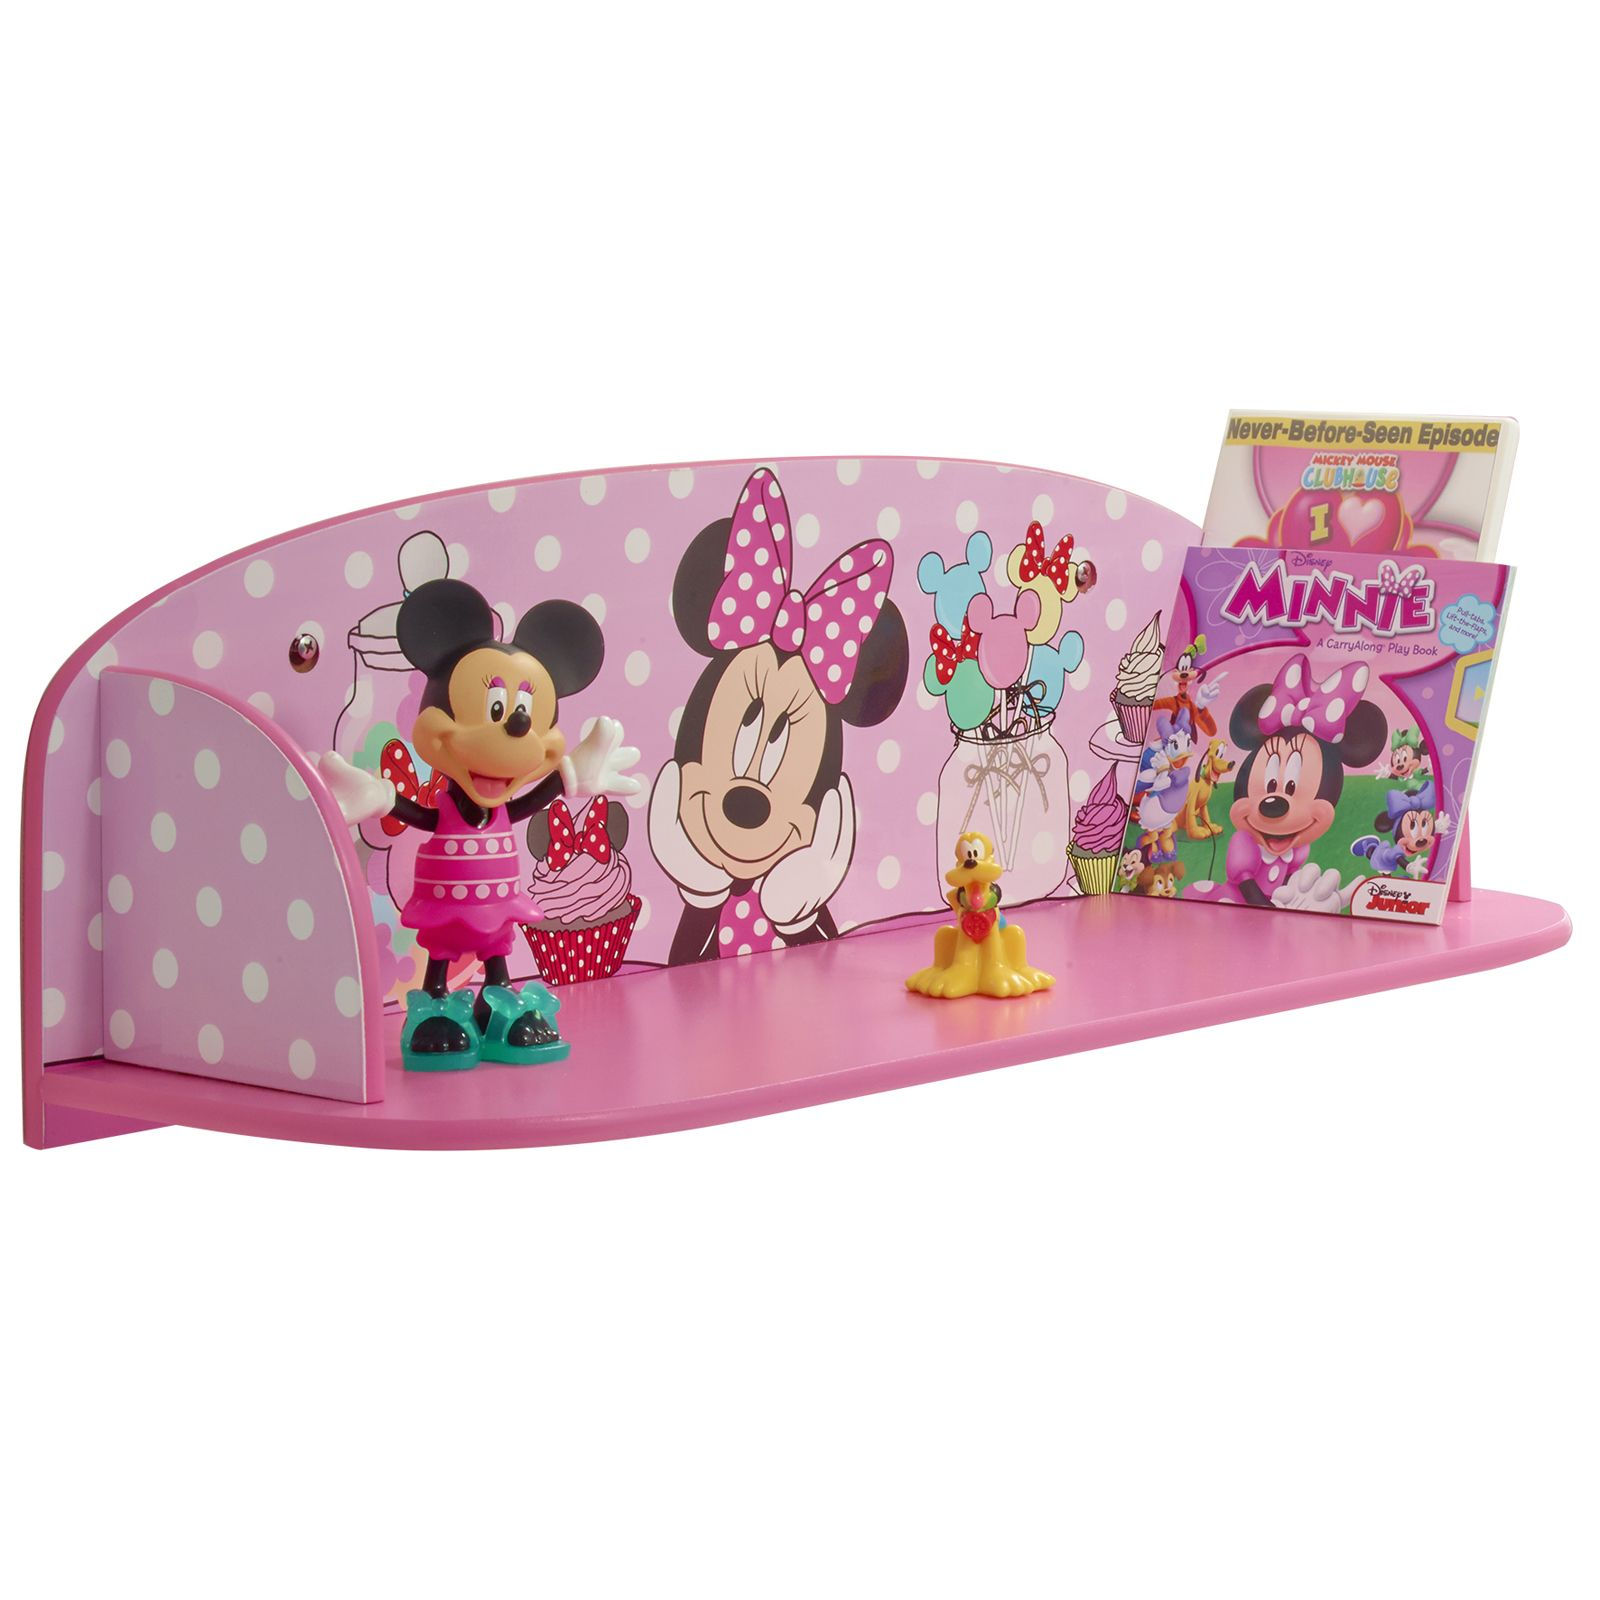 Minnie Mouse Booktime Book Shelf NEW Bedroom Furniture Disney EBay